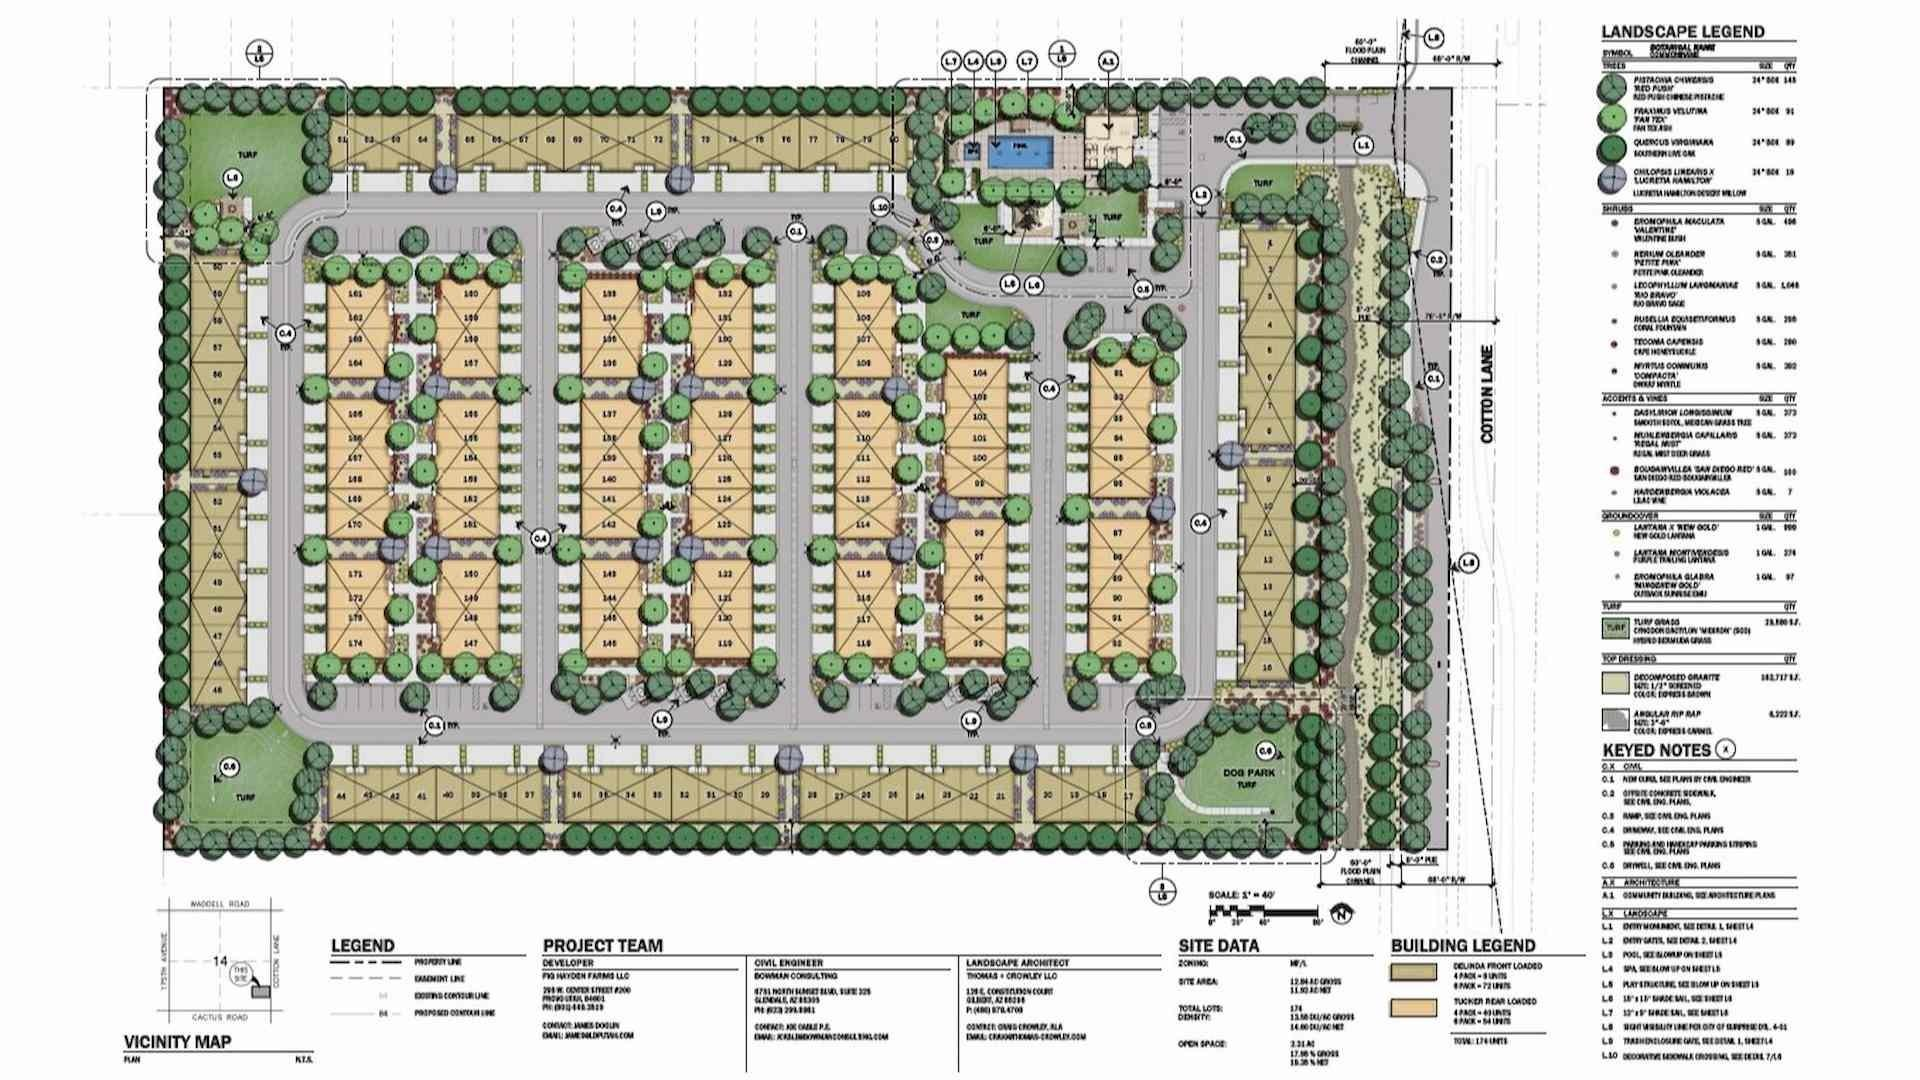 Landscaping for the Hayden Farms multifamily development